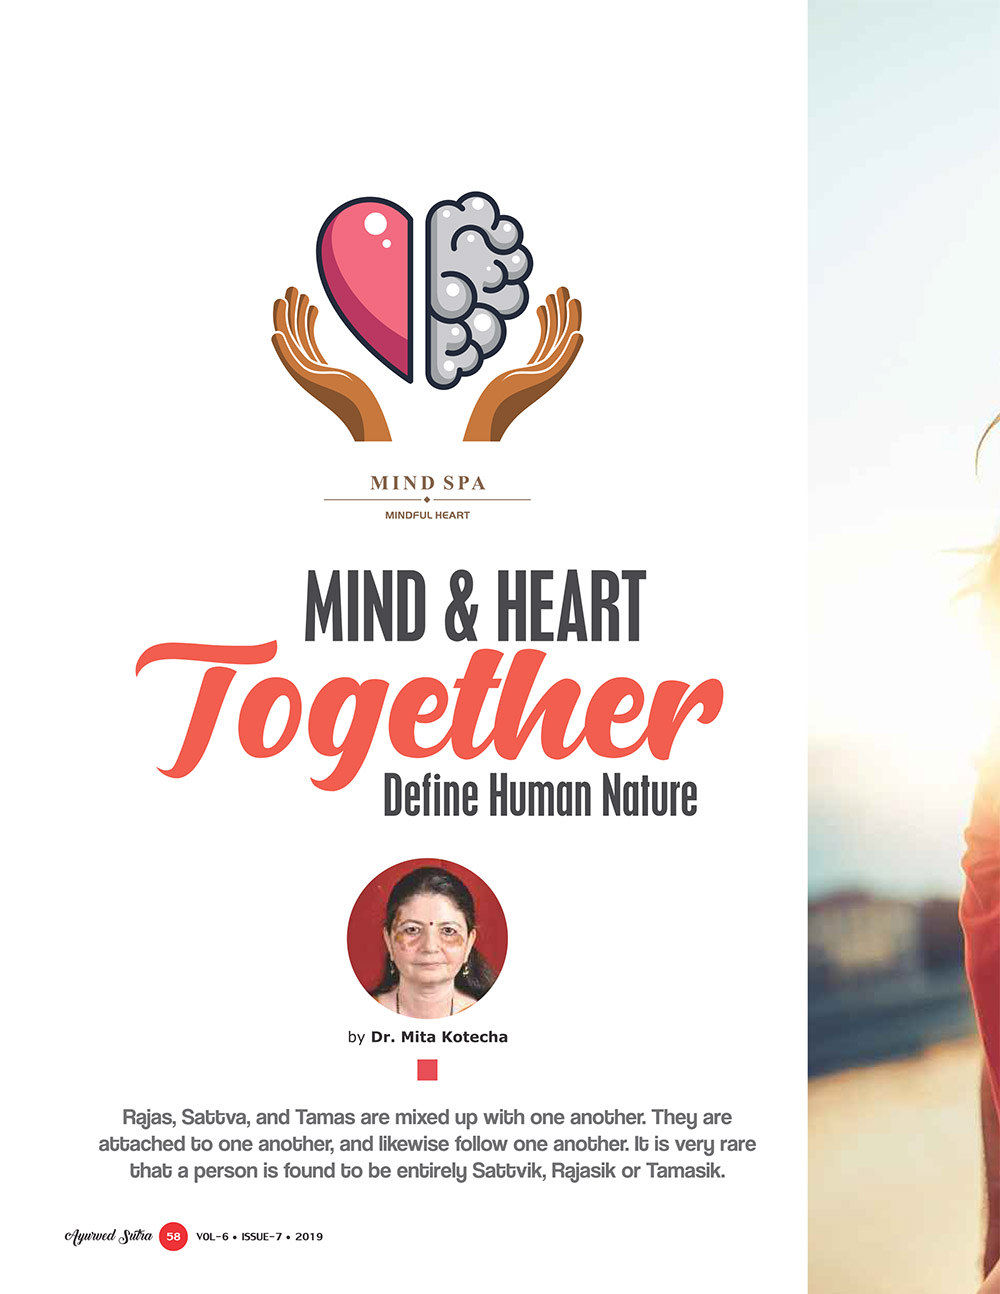 Ayurvedsutra Vol 06 issue 07 60 - Mind & Heart together define Human Nature